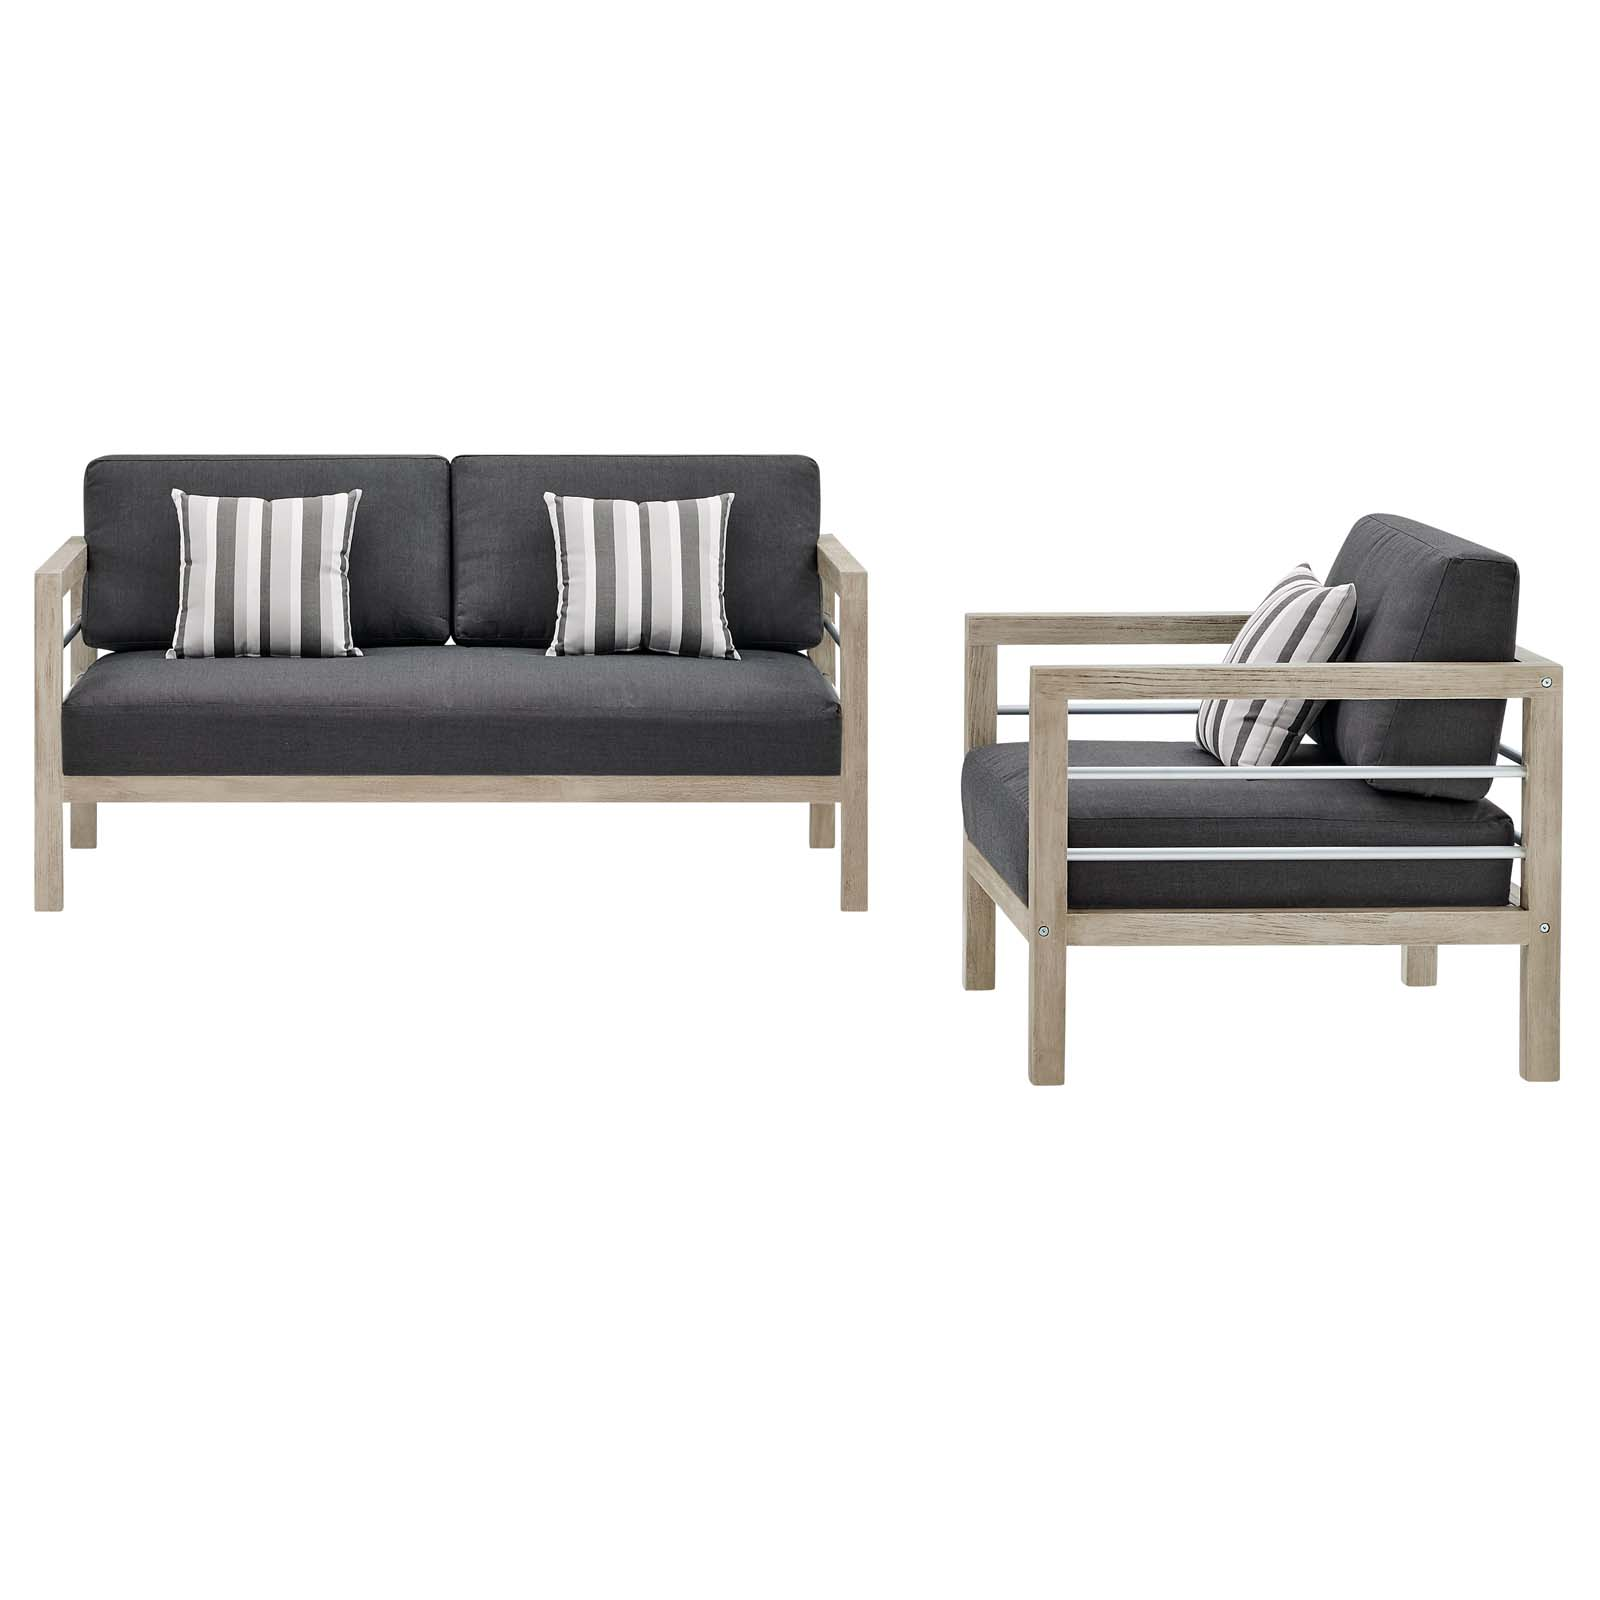 Picture of: Wiscasset Light Gray Outdoor Patio Acacia Wood Loveseat And Arm Chair Set Eei 3763 Lgr Ste Set 1stopbedrooms